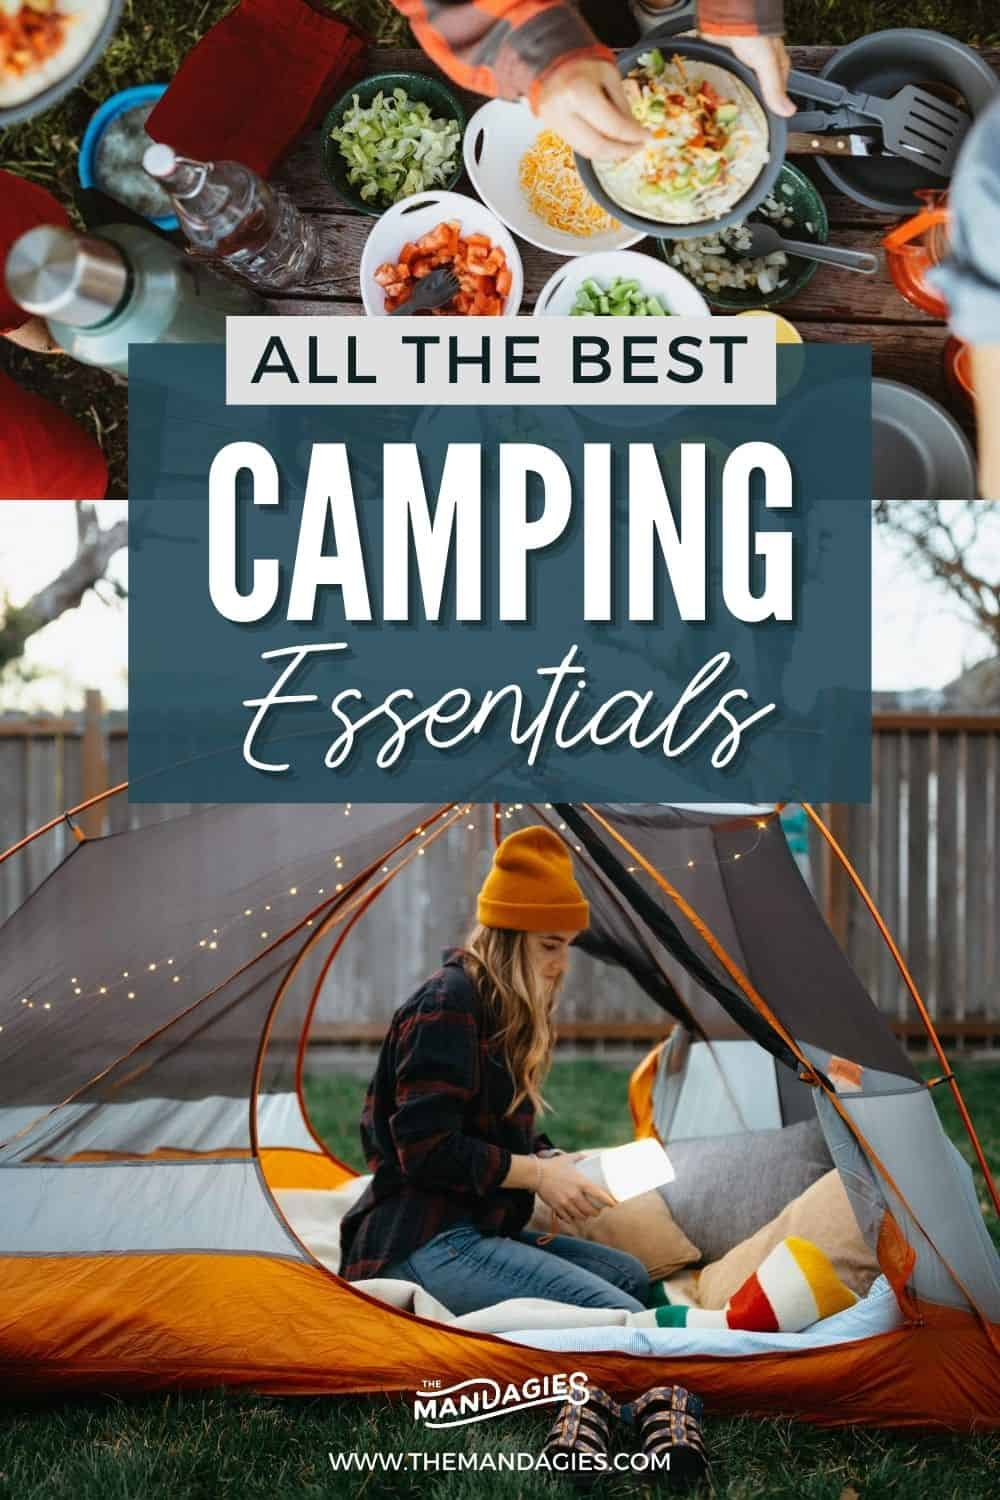 Looking for a no-fuss camping checklist? We're sharing all the camping essentials that we bring and love, proven over countless camping trips and day trips! We're sharing all the essentials for camping, including tents, camping stoves, coolers, camping chairs, and more fun items! Save this post for your next camping trip! #camping #campingessentials #campingpackinglist #packinglist #packing #campground #USA #roadtrip